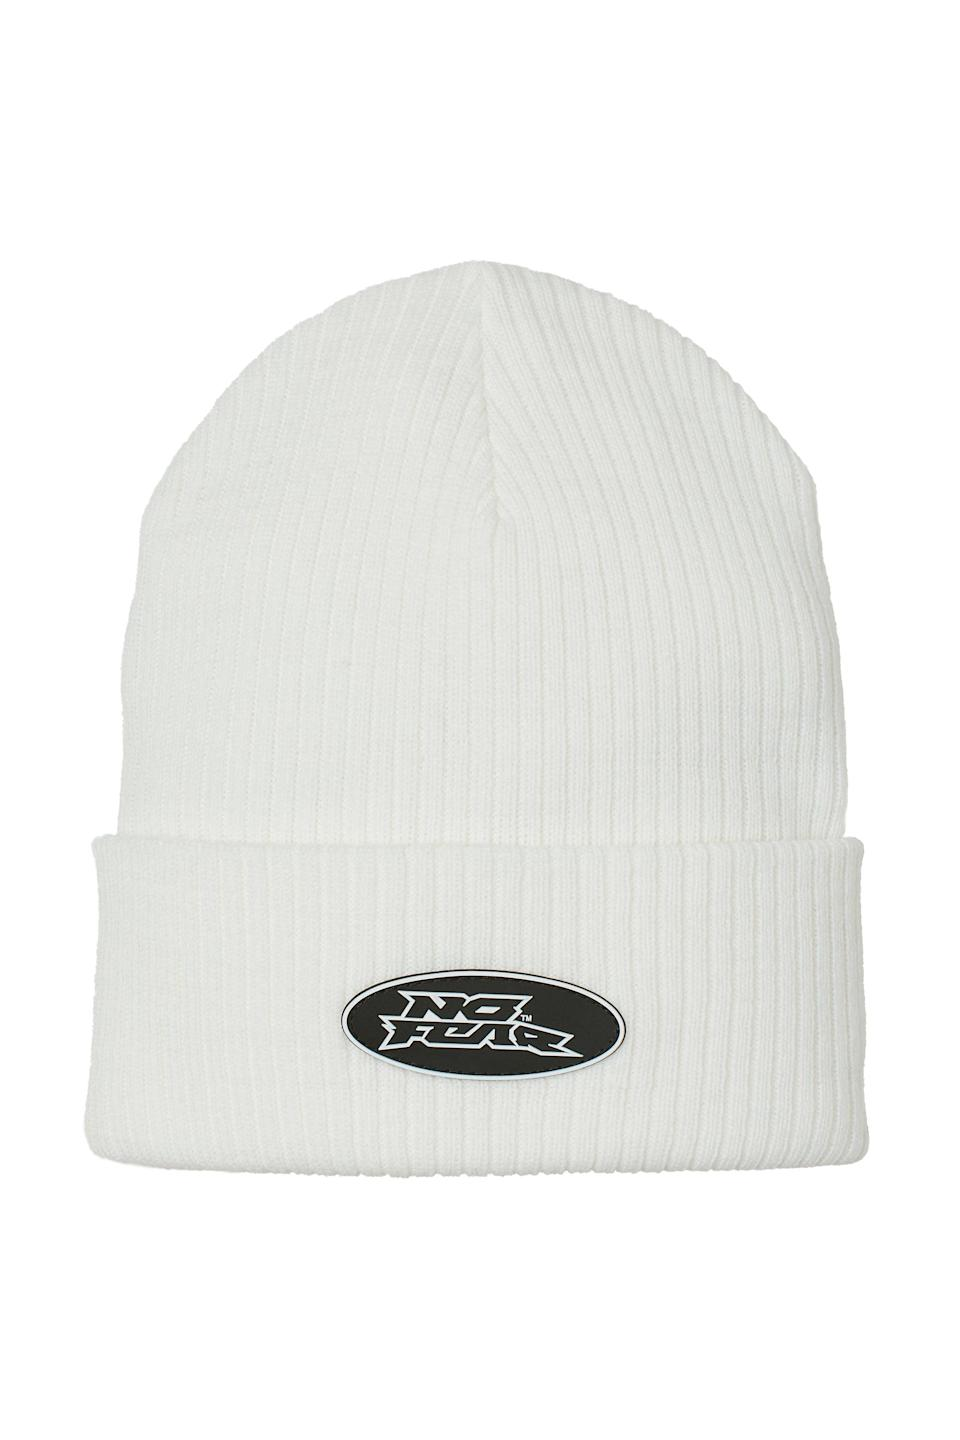 <p>This <span>No Fear x H&amp;M Knit Hat</span> ($10) will look great with a winter white outfit. It's the perfect finishing touch to any outfit.</p>